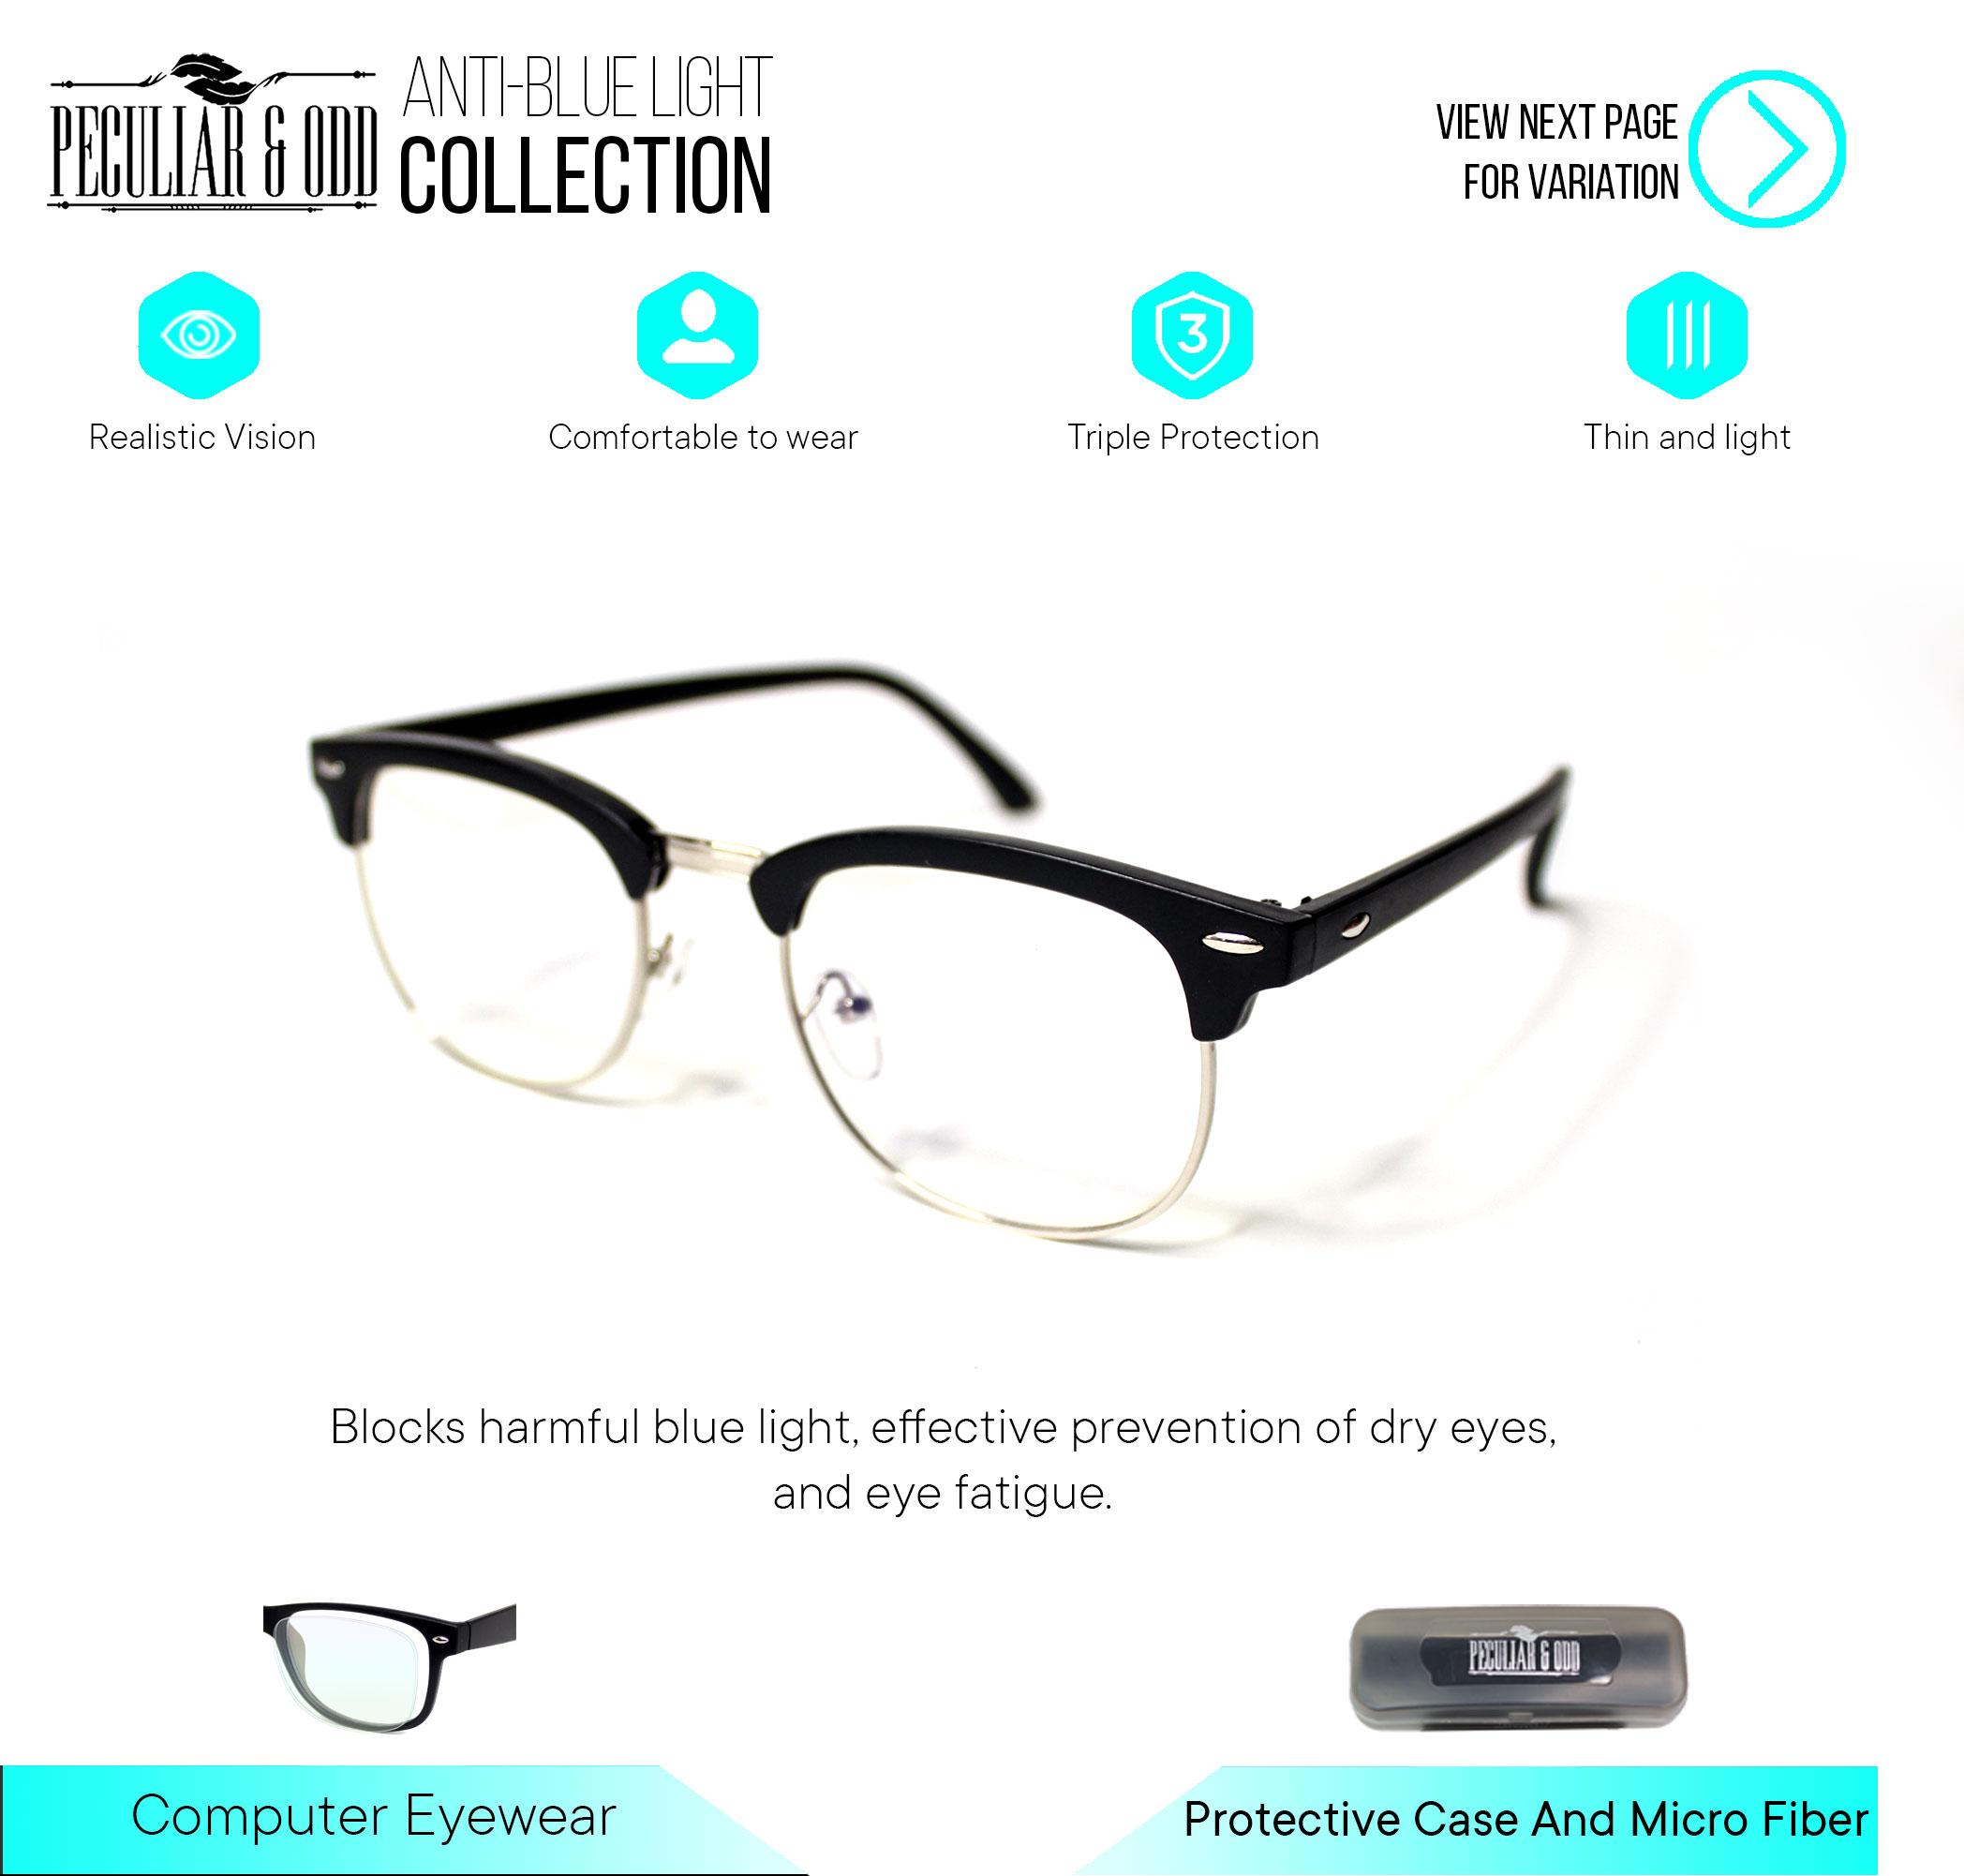 06993f77624f Glasses for sale - Eyewear Online Deals & Prices in Philippines ...